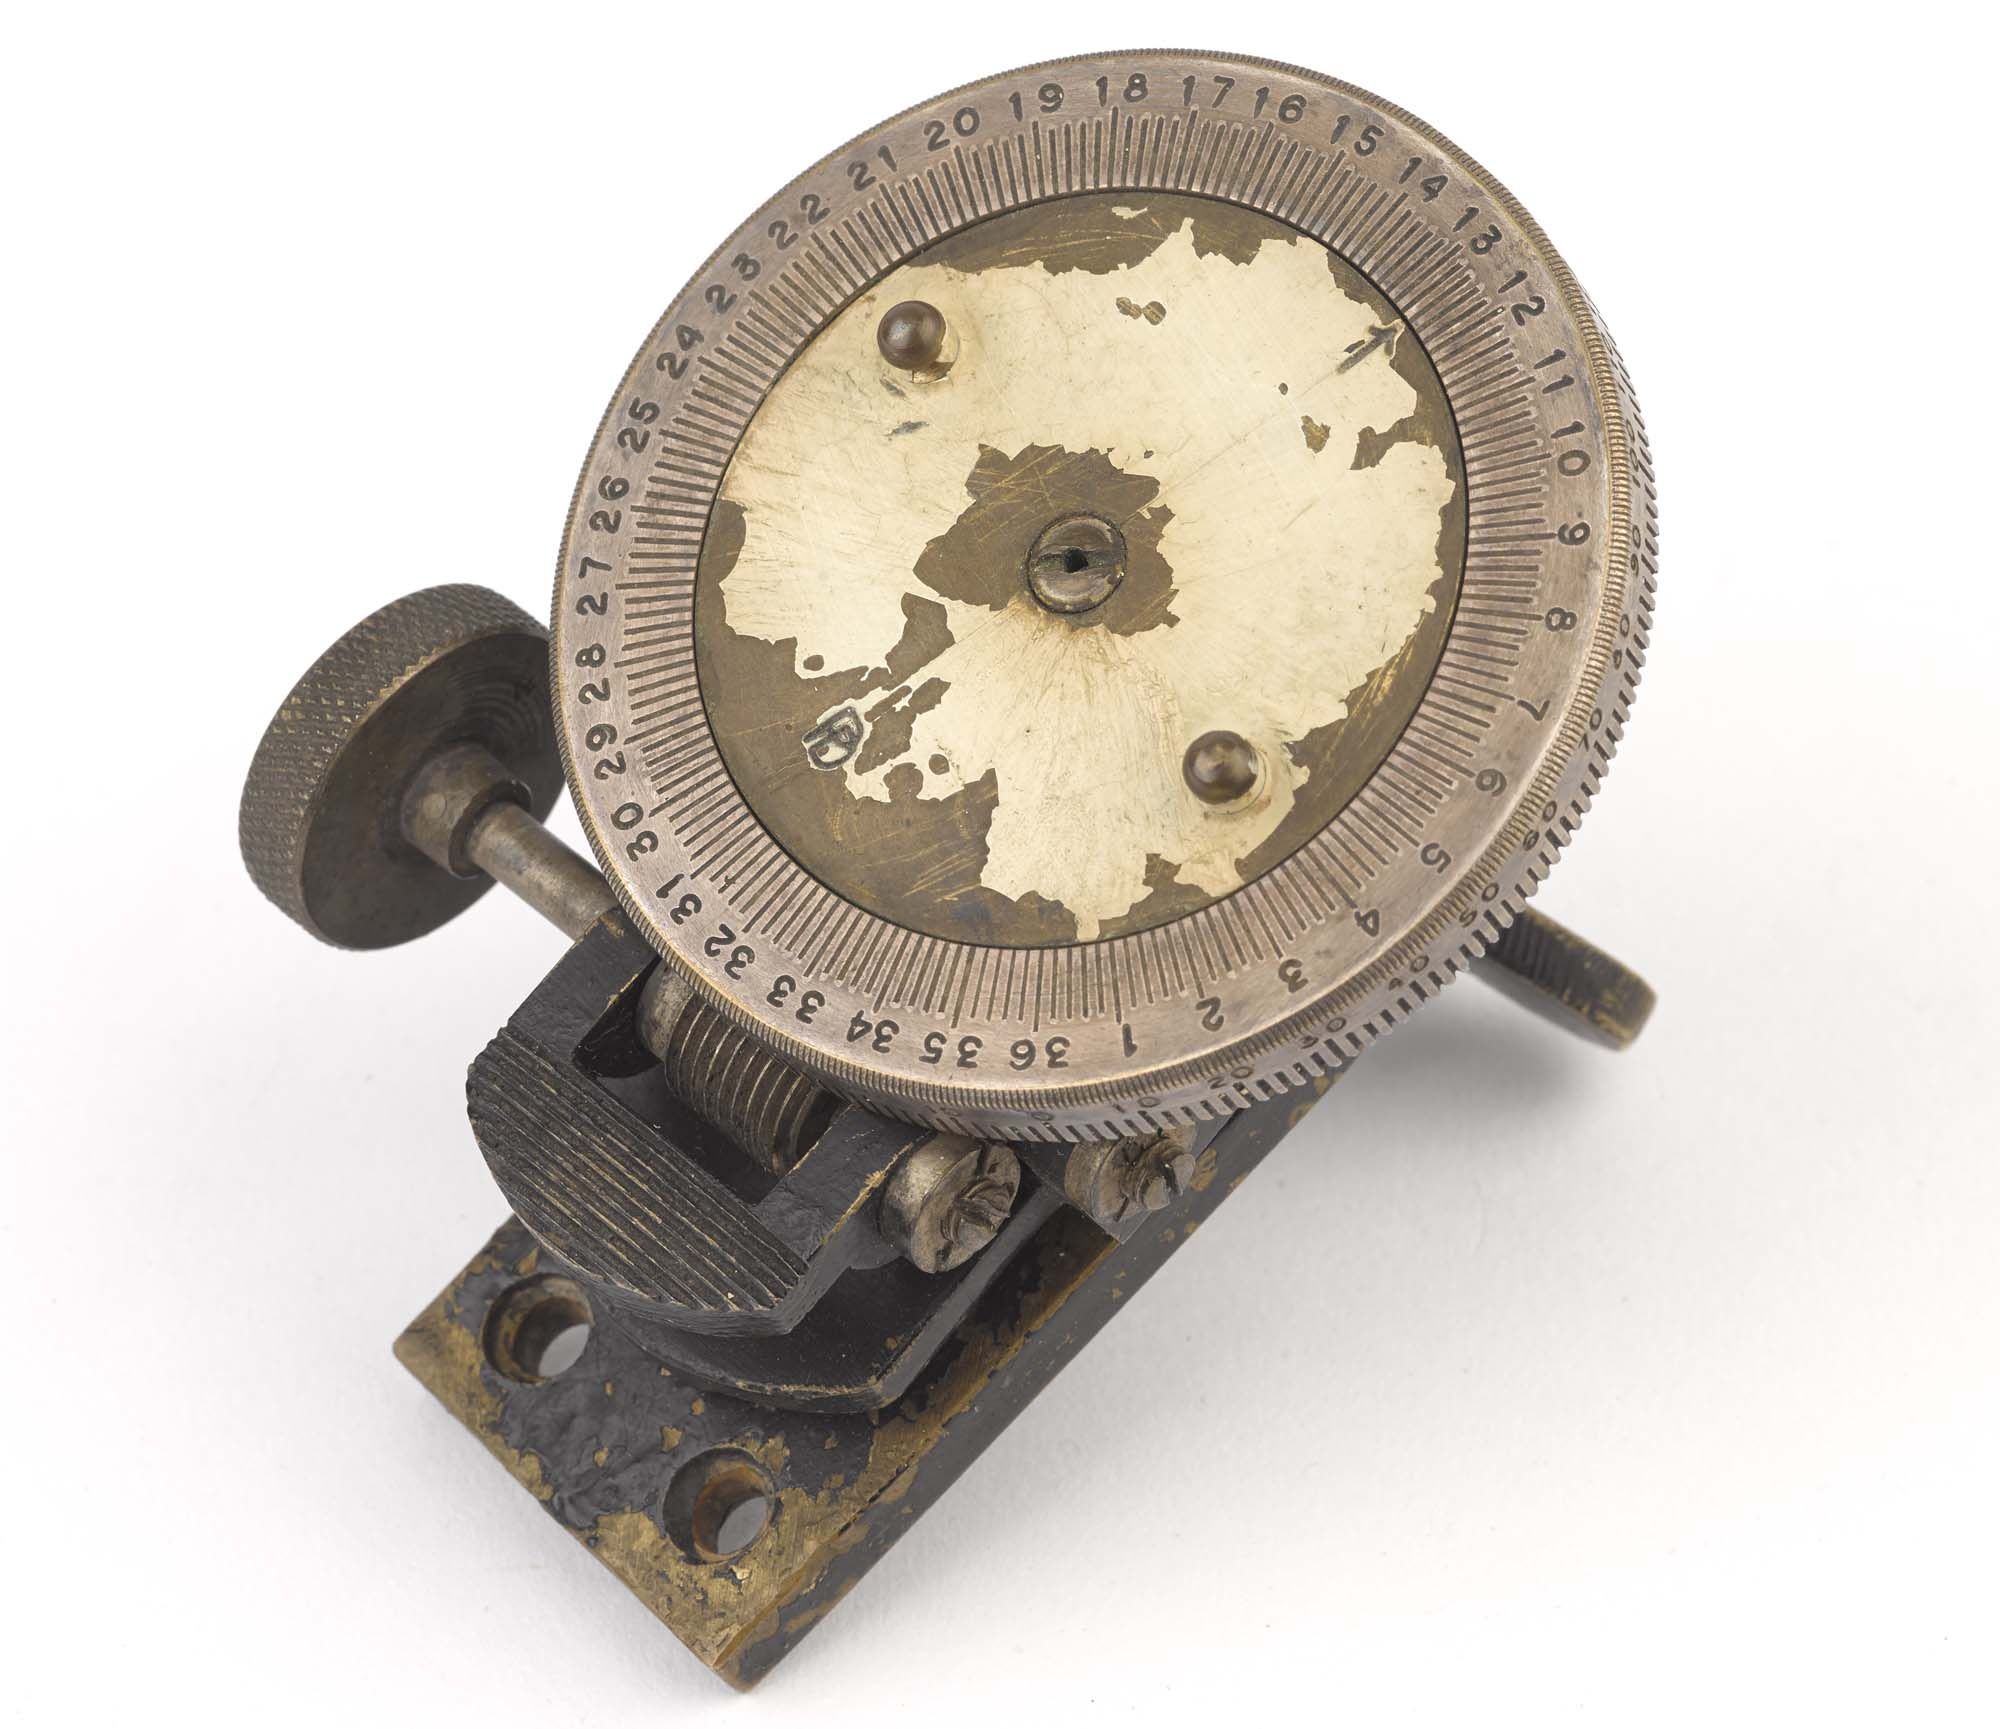 a photo of a compass made from a brass wheel on a metal stand